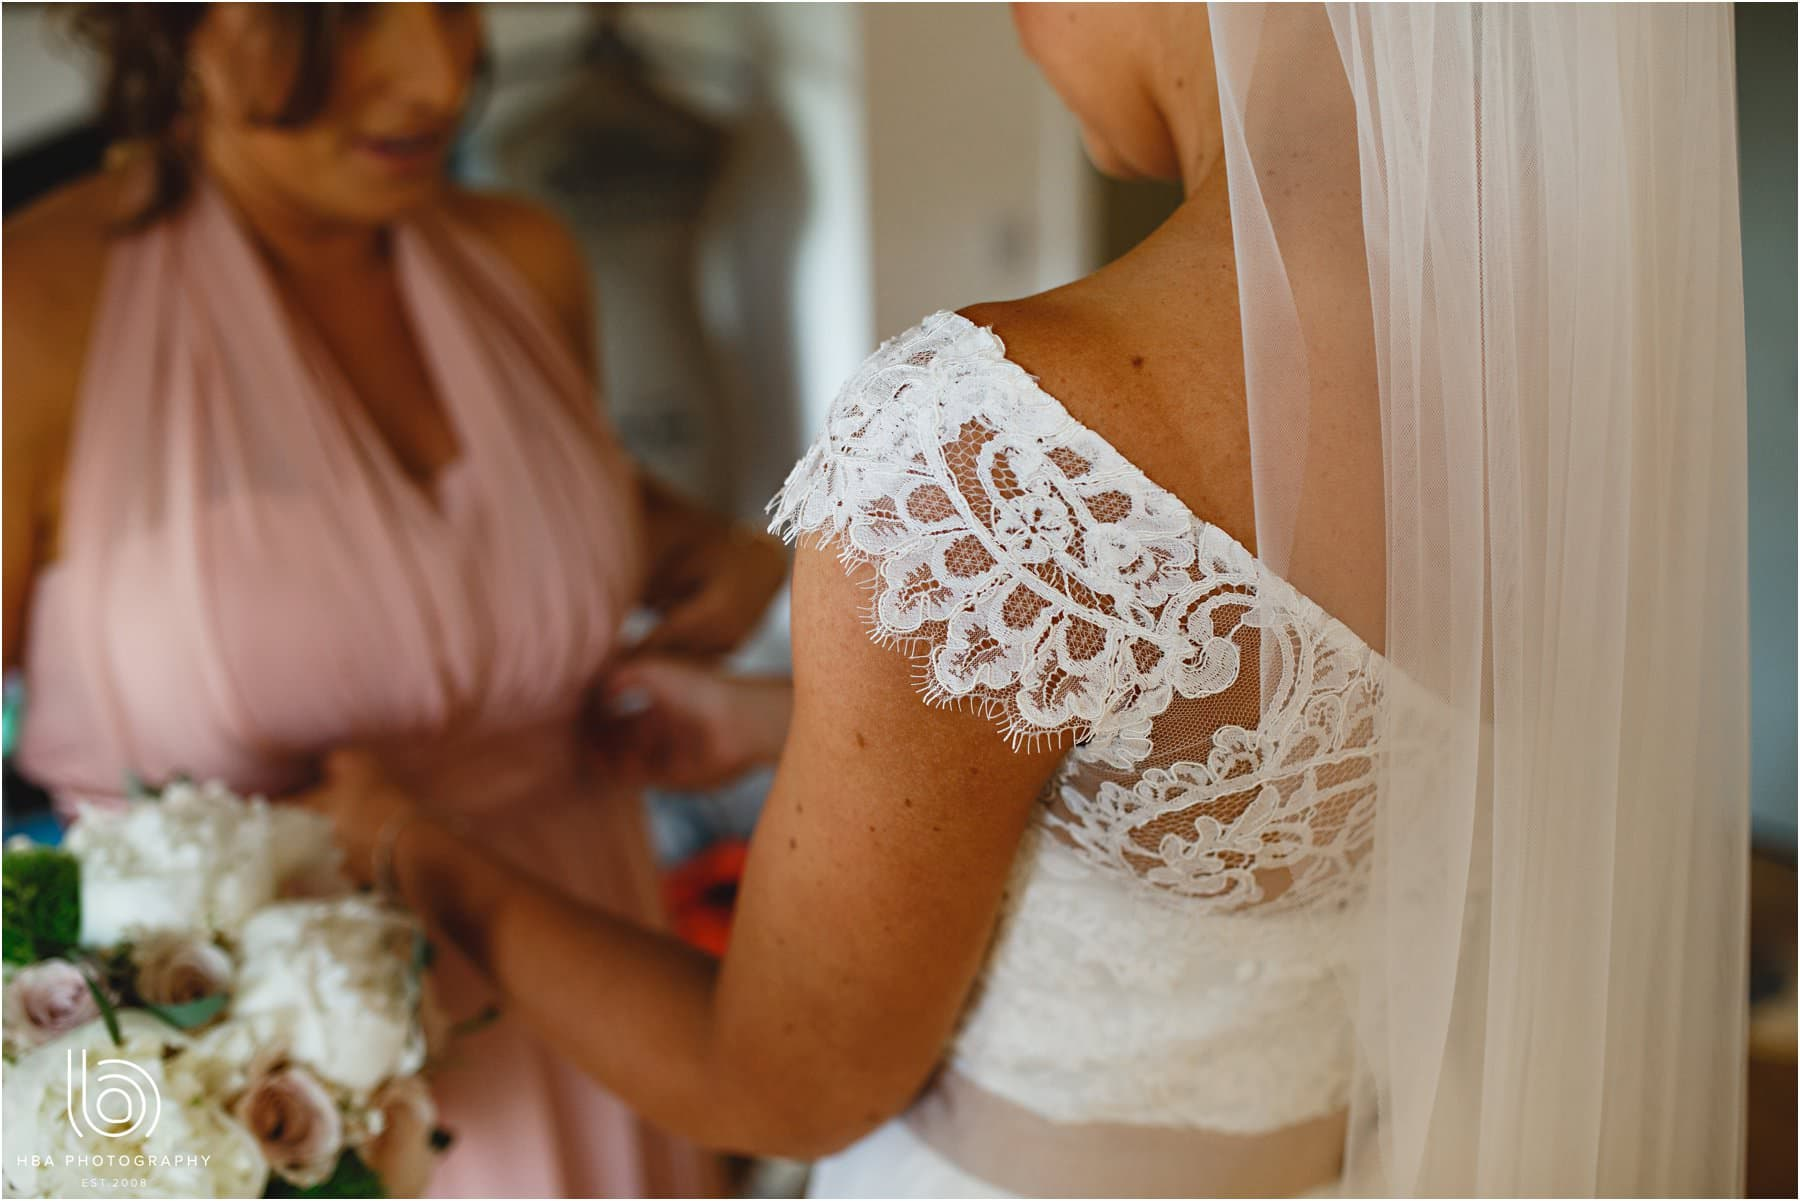 the detail on the brides dress